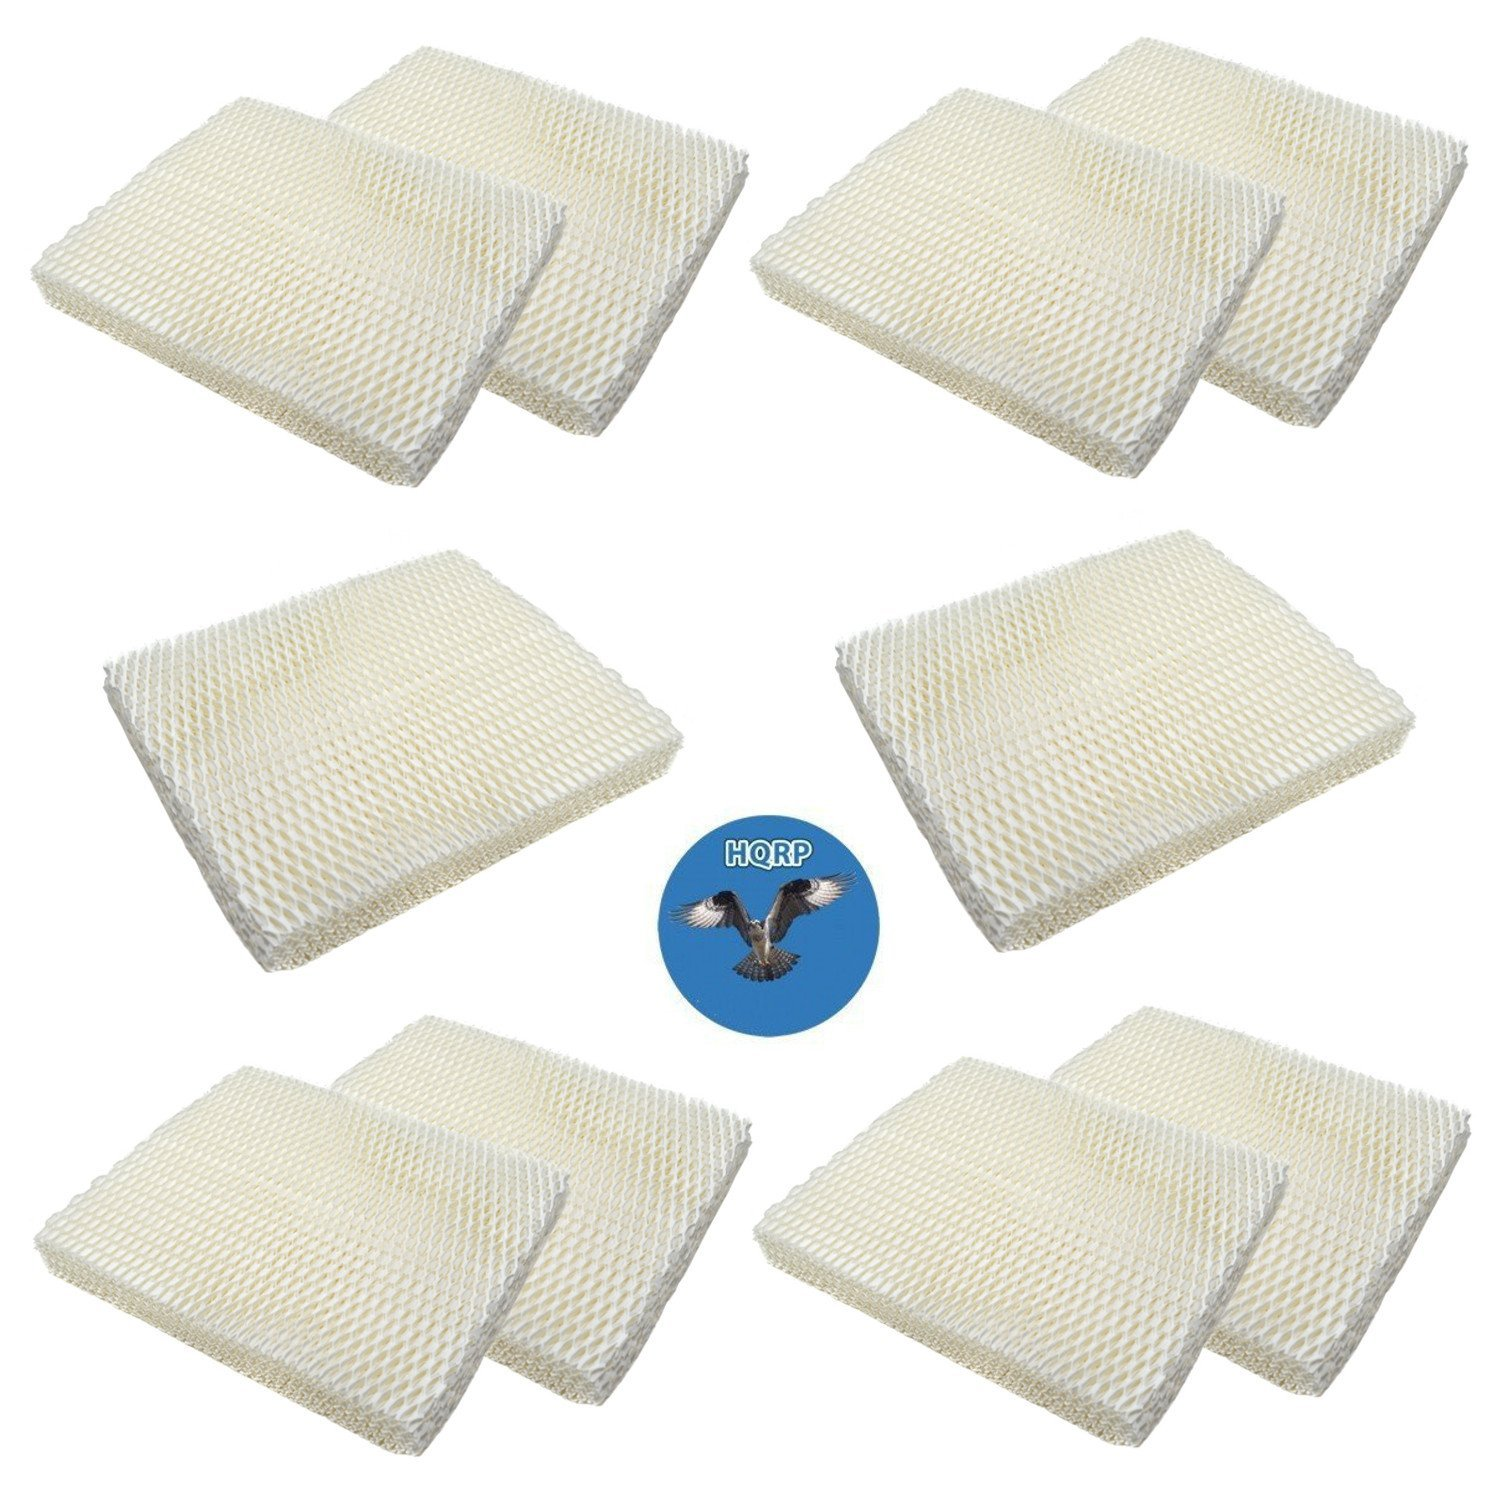 HQRP 10-pack Wick Filter for Holmes HM1000 HM1025 HM1050 HM2000 HM1550 HM1555 Humidifiers, HWF-55 HWF55 H55-C Replacement + HQRP Coaster